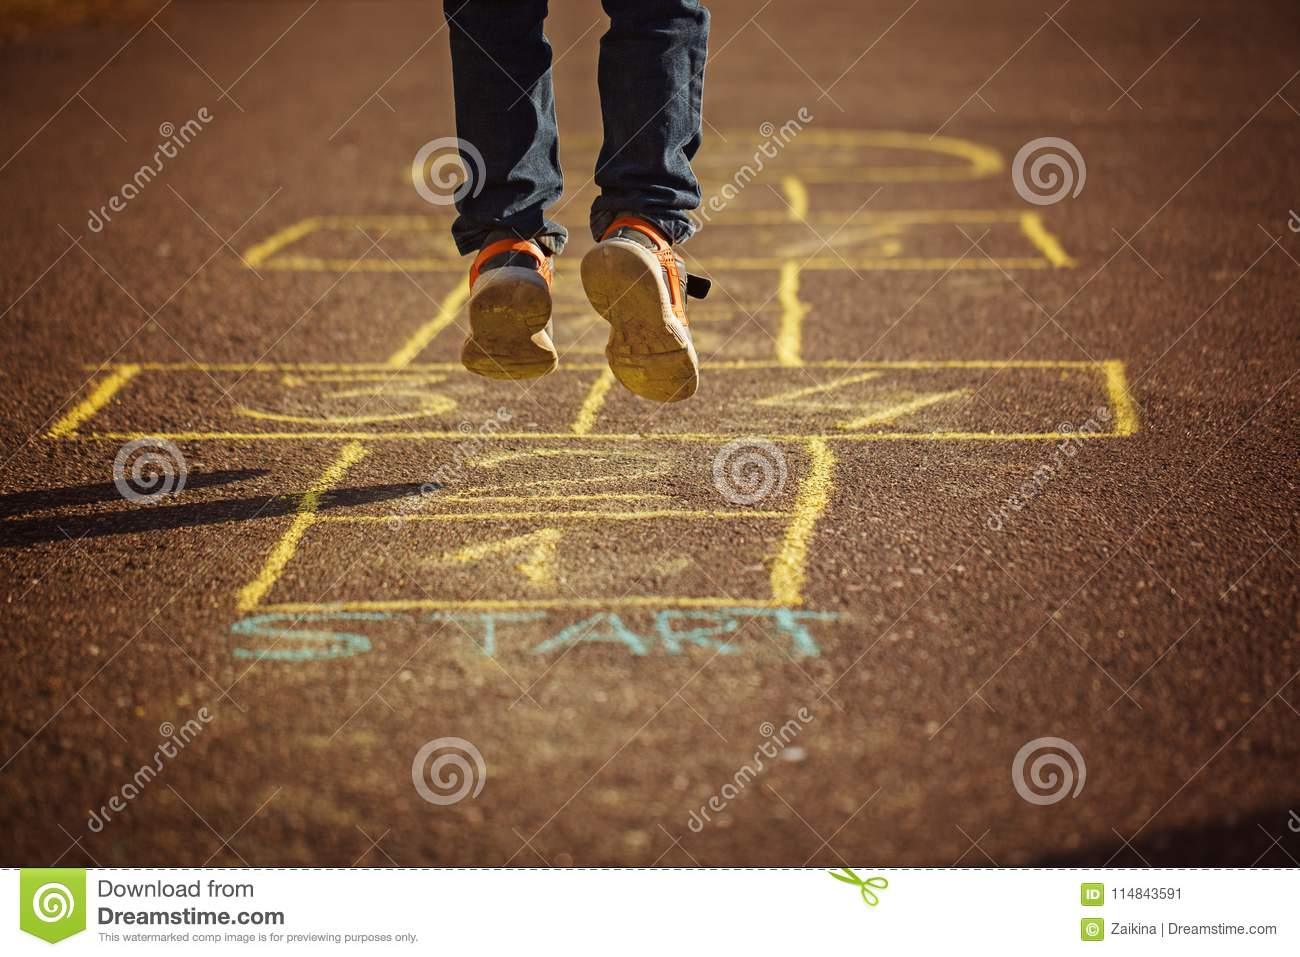 Kids playing hopscotch on playground outdoors. Hopscotch popular street game.